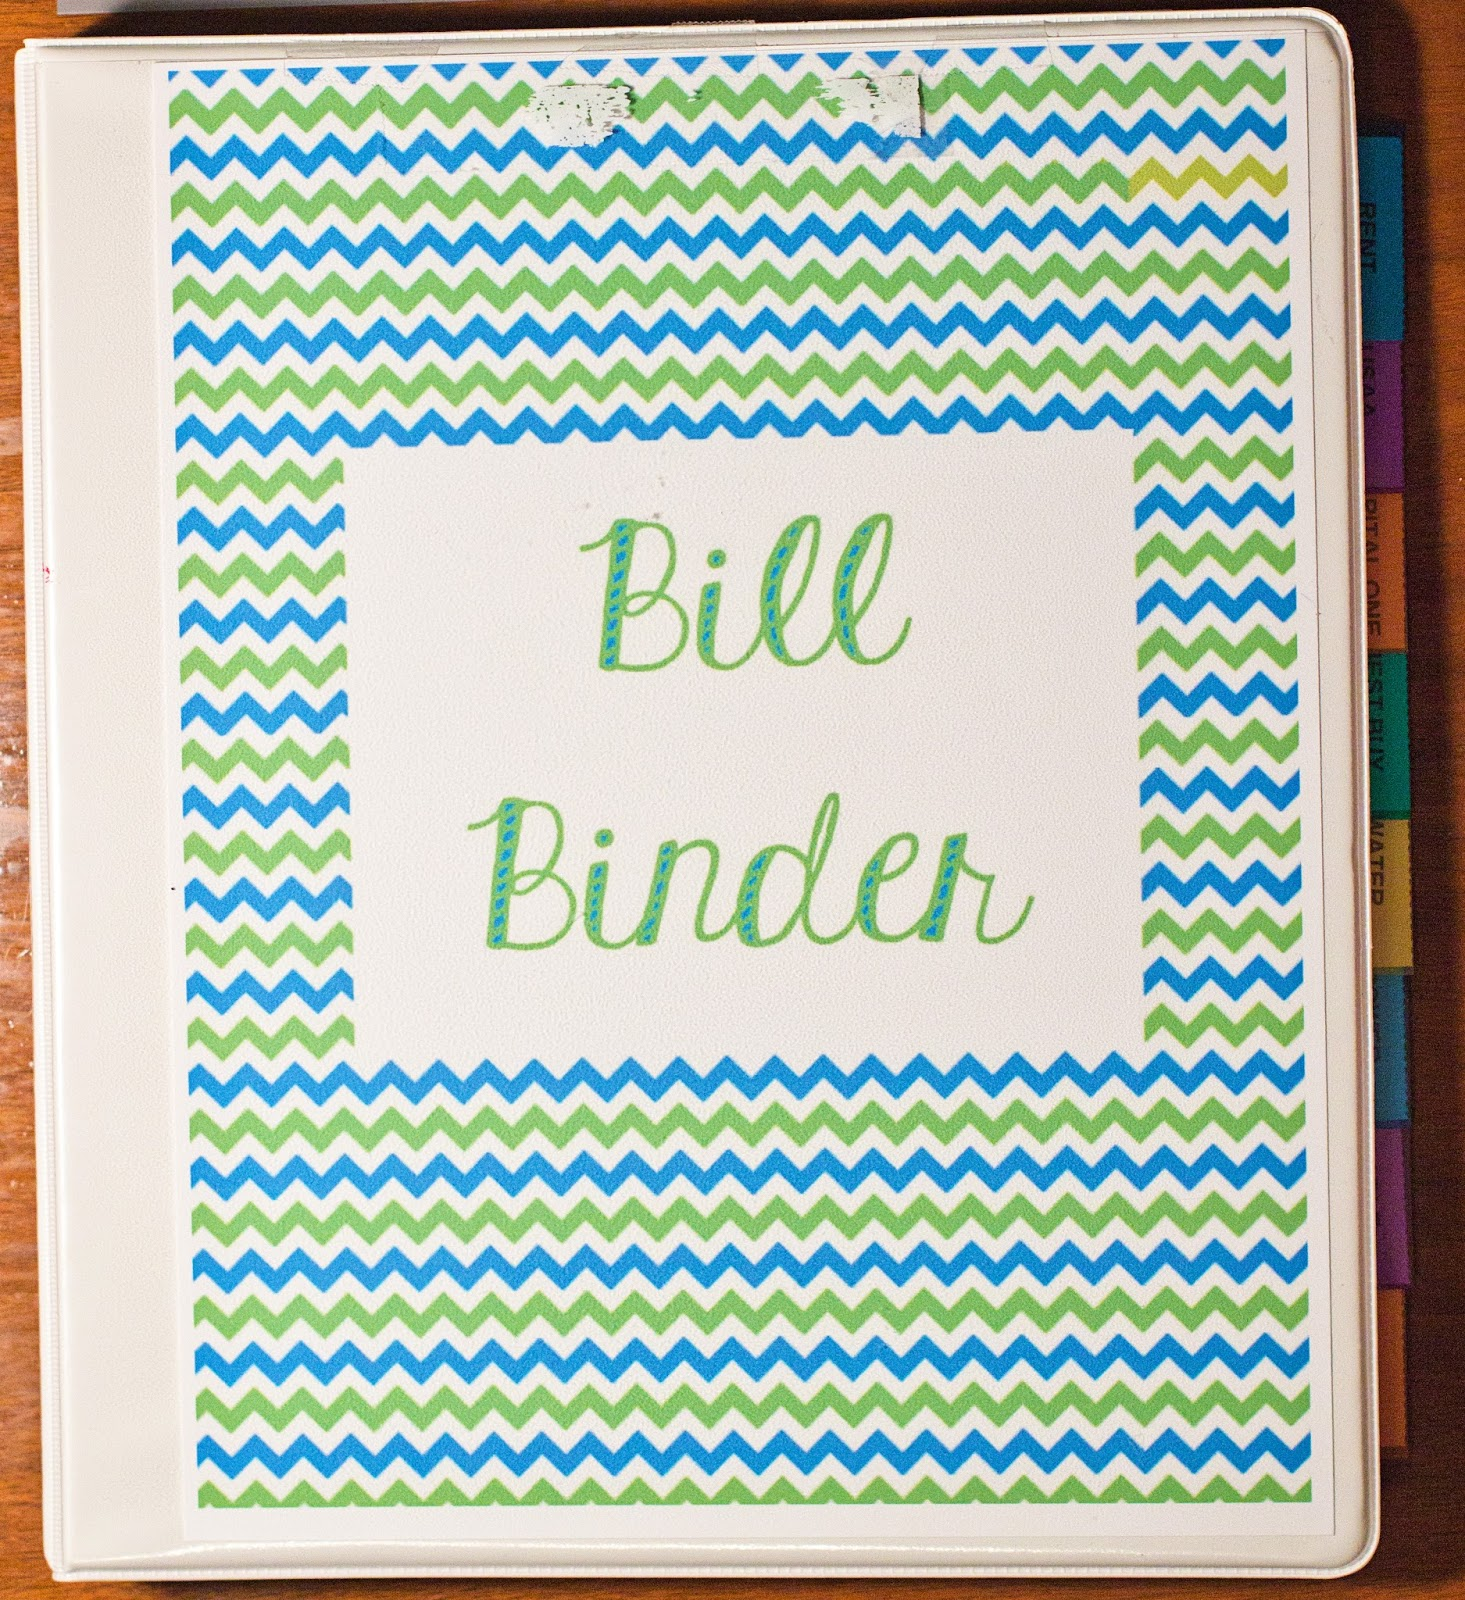 once i started i realized that putting a bill binder together wasnt all that difficult or time consuming i still dont know why i hadnt done it sooner